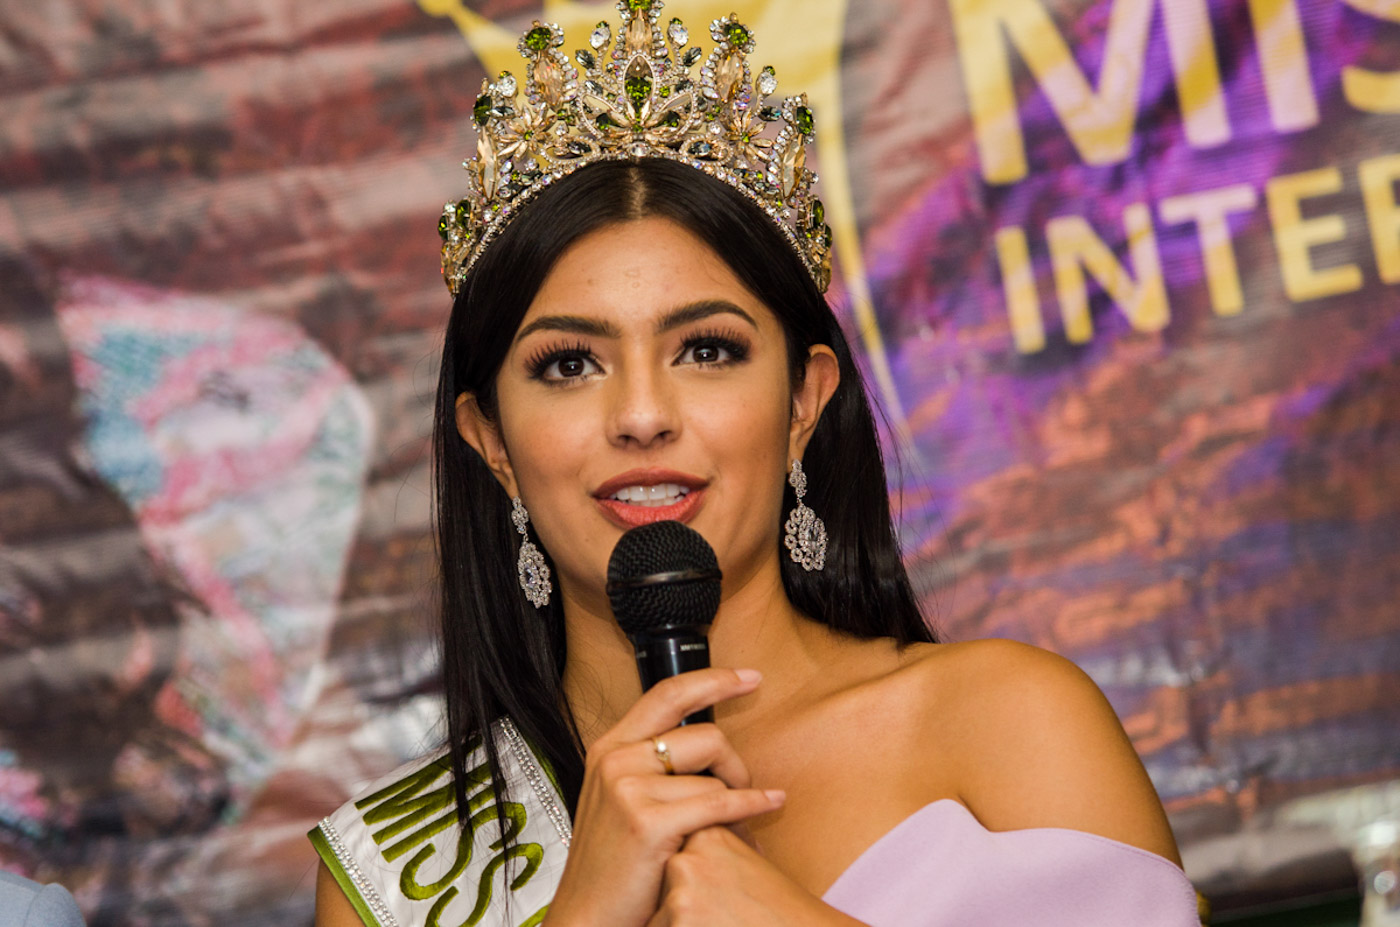 MS ECO INTERNATIONAL. Cynthia Thomalla speaks during her welcome home press conference. File photo by Rob Reyes/Rappler